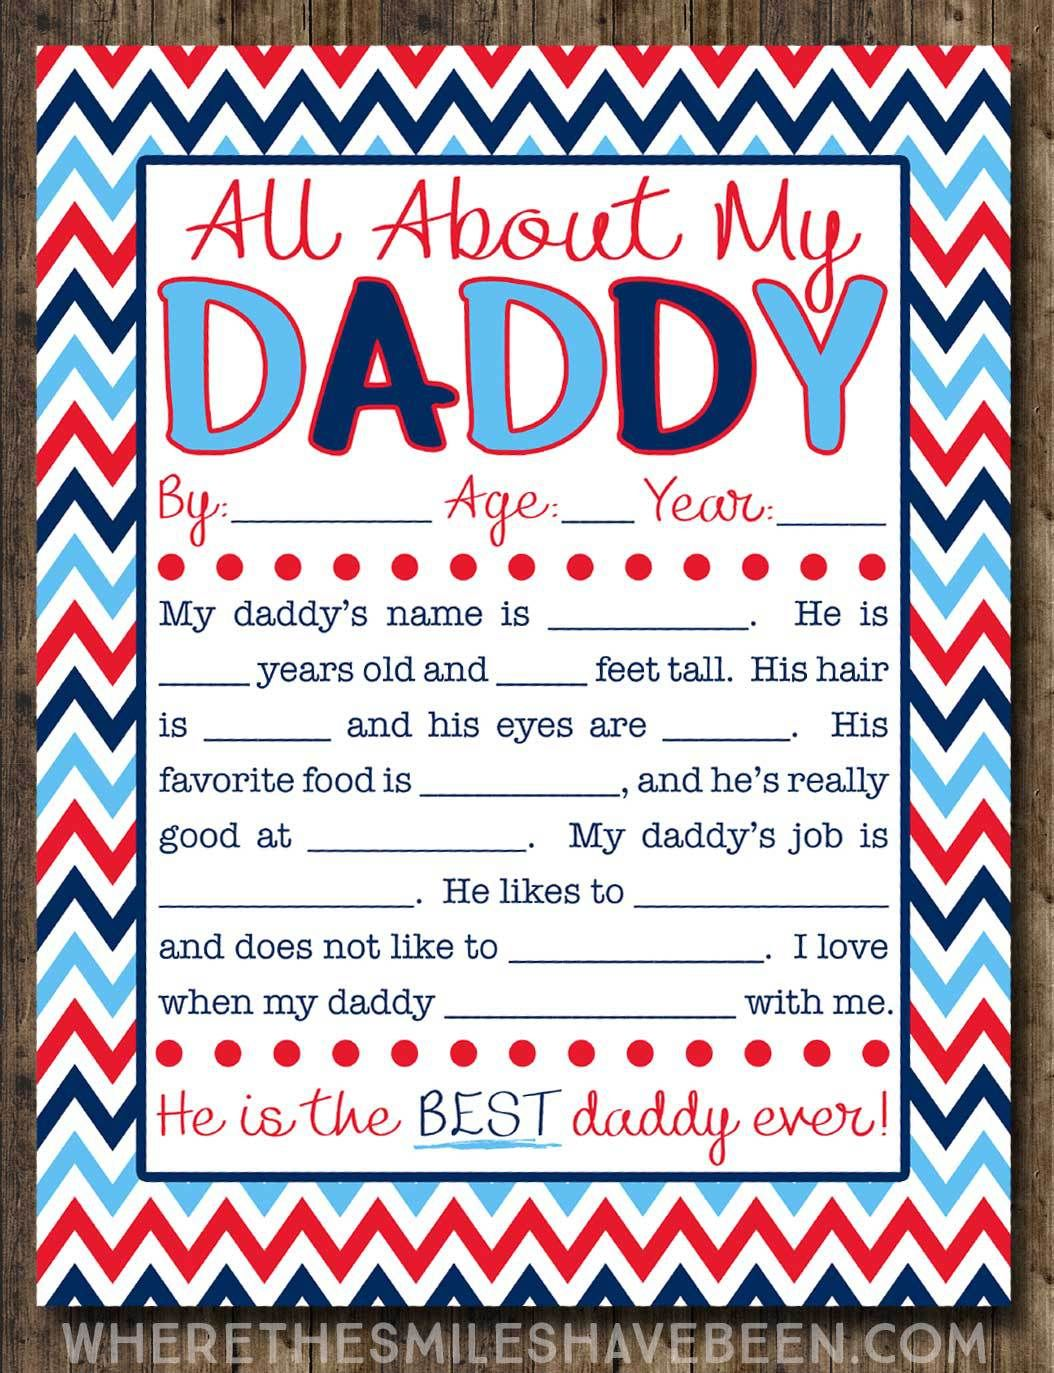 All About My Daddy Interview With Free Printable